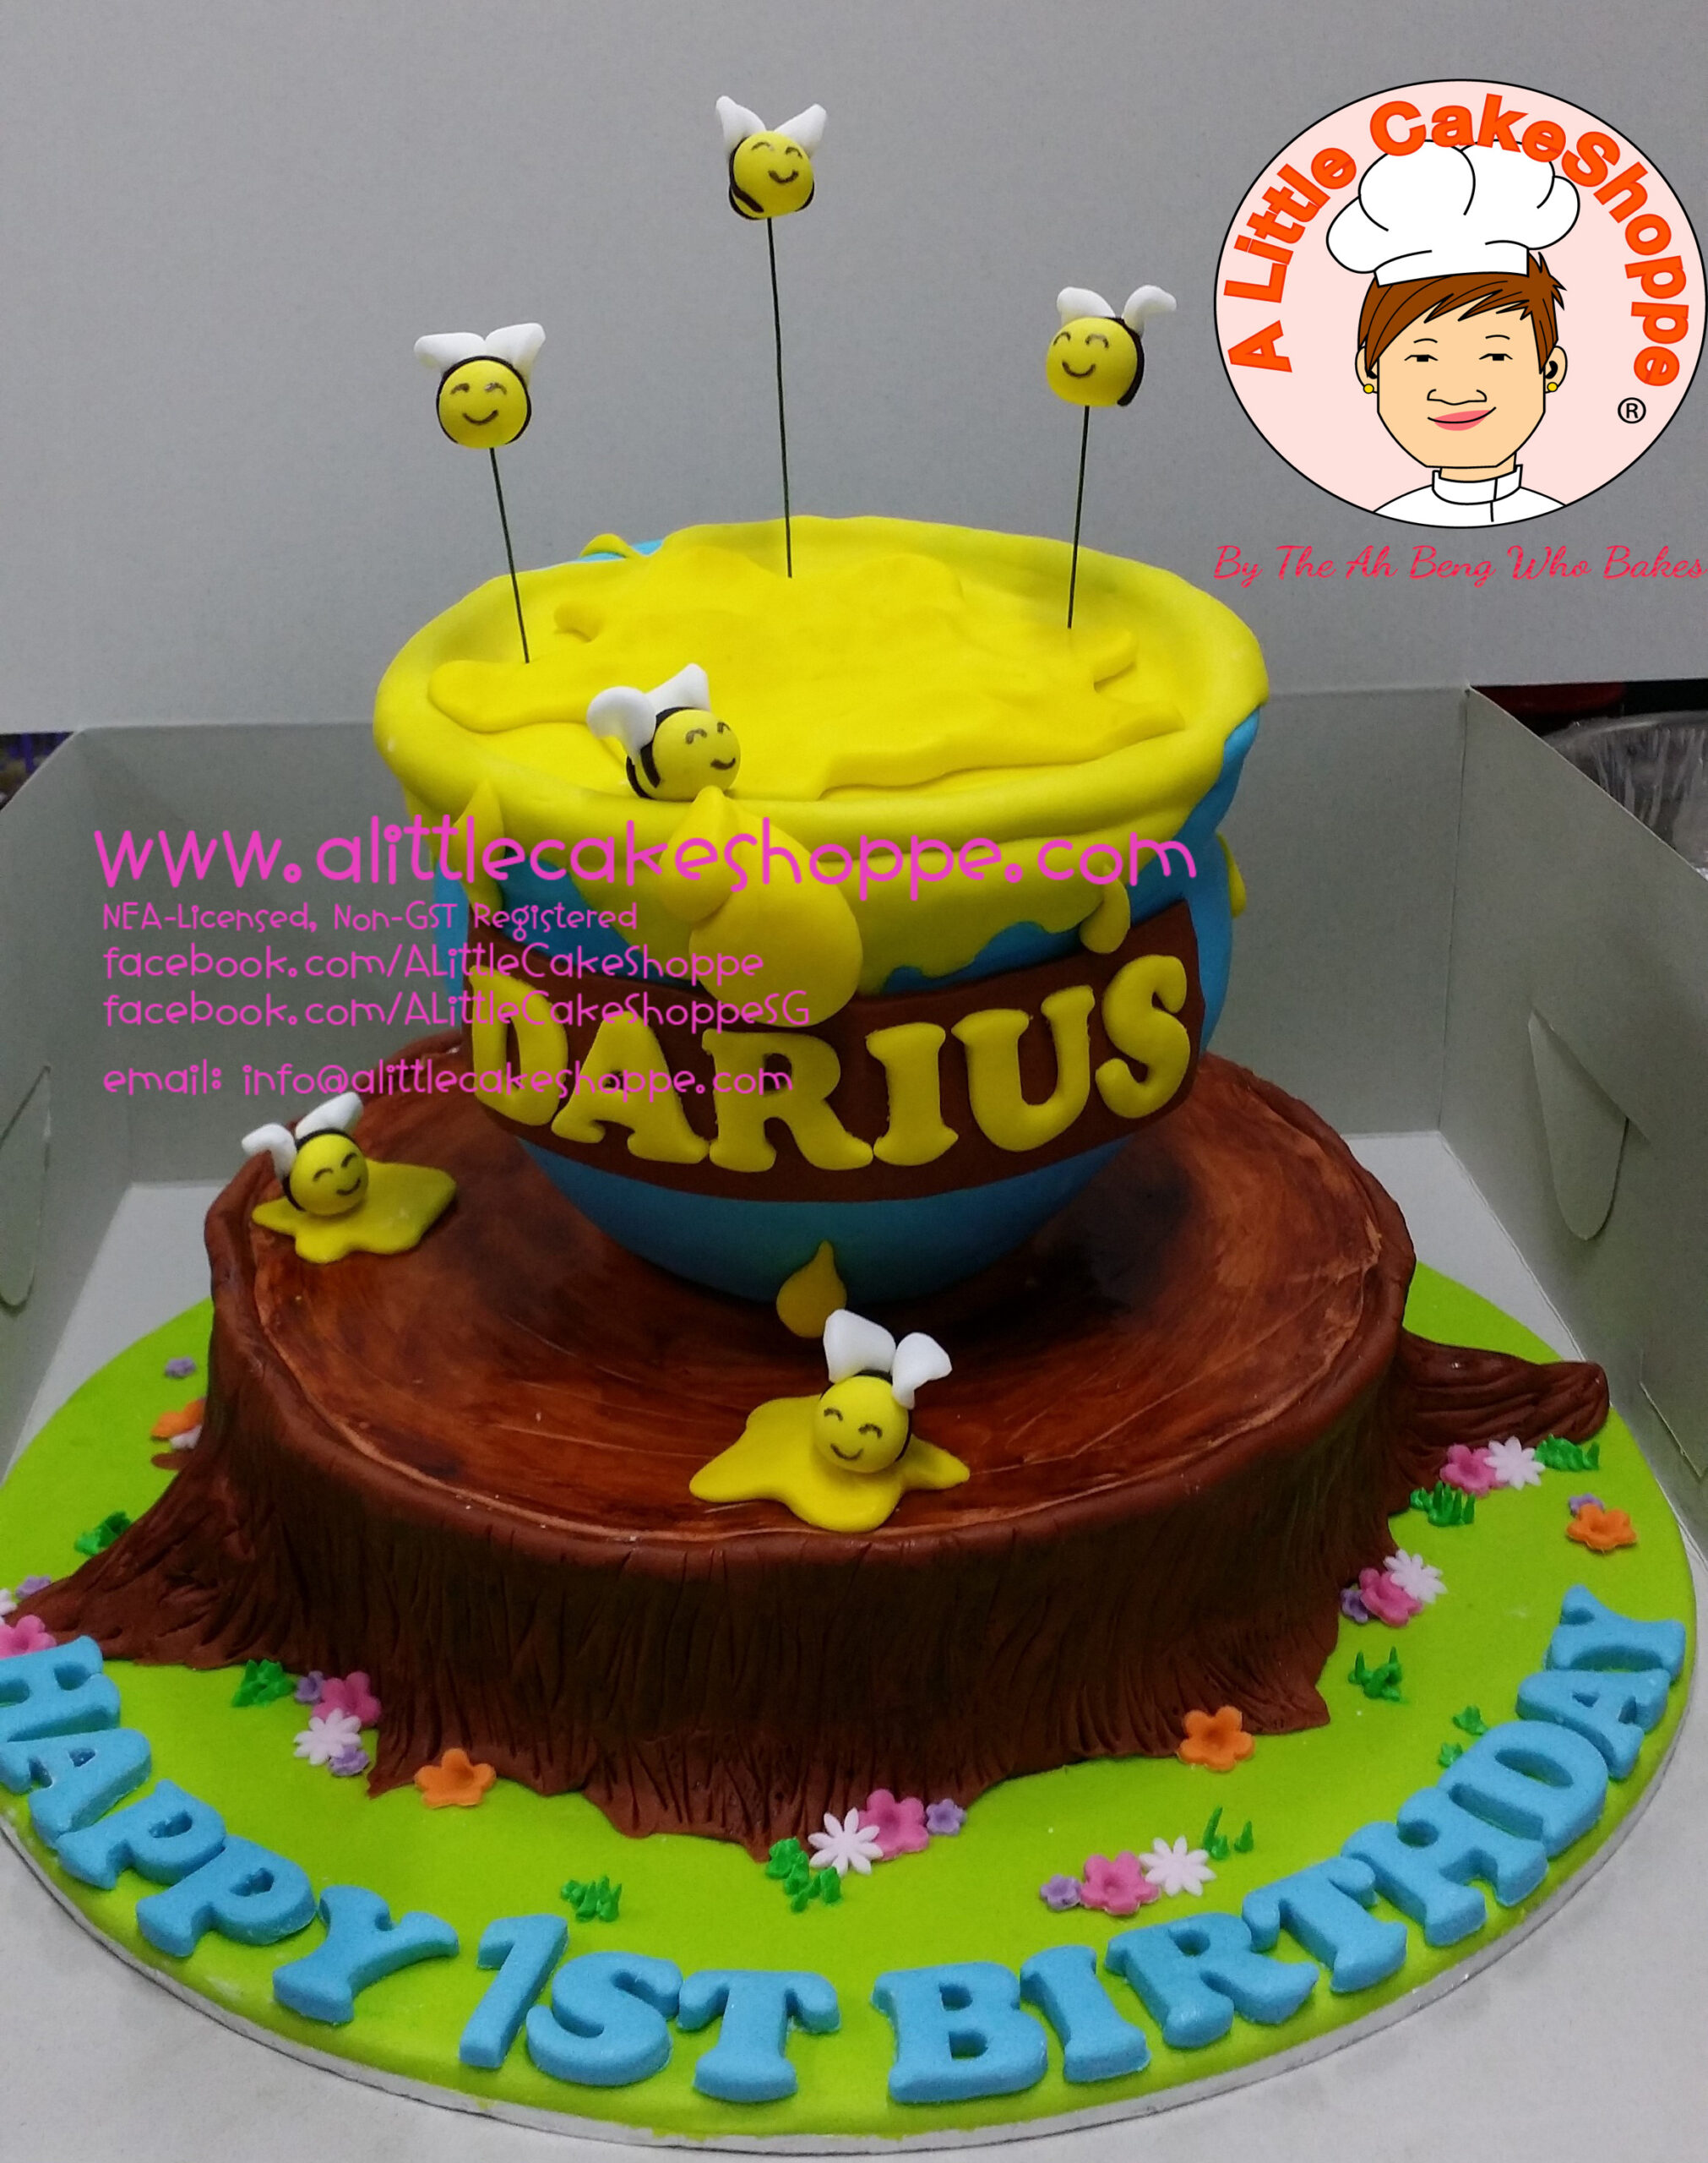 Best Customised Cake Singapore custom cake 2D 3D birthday cake cupcakes wedding corporate events anniversary fondant fresh cream buttercream cakes alittlecakeshoppe compliments review singapore bakers SG cakeshop ah beng who bakes winnie the pooh honey pots and bees